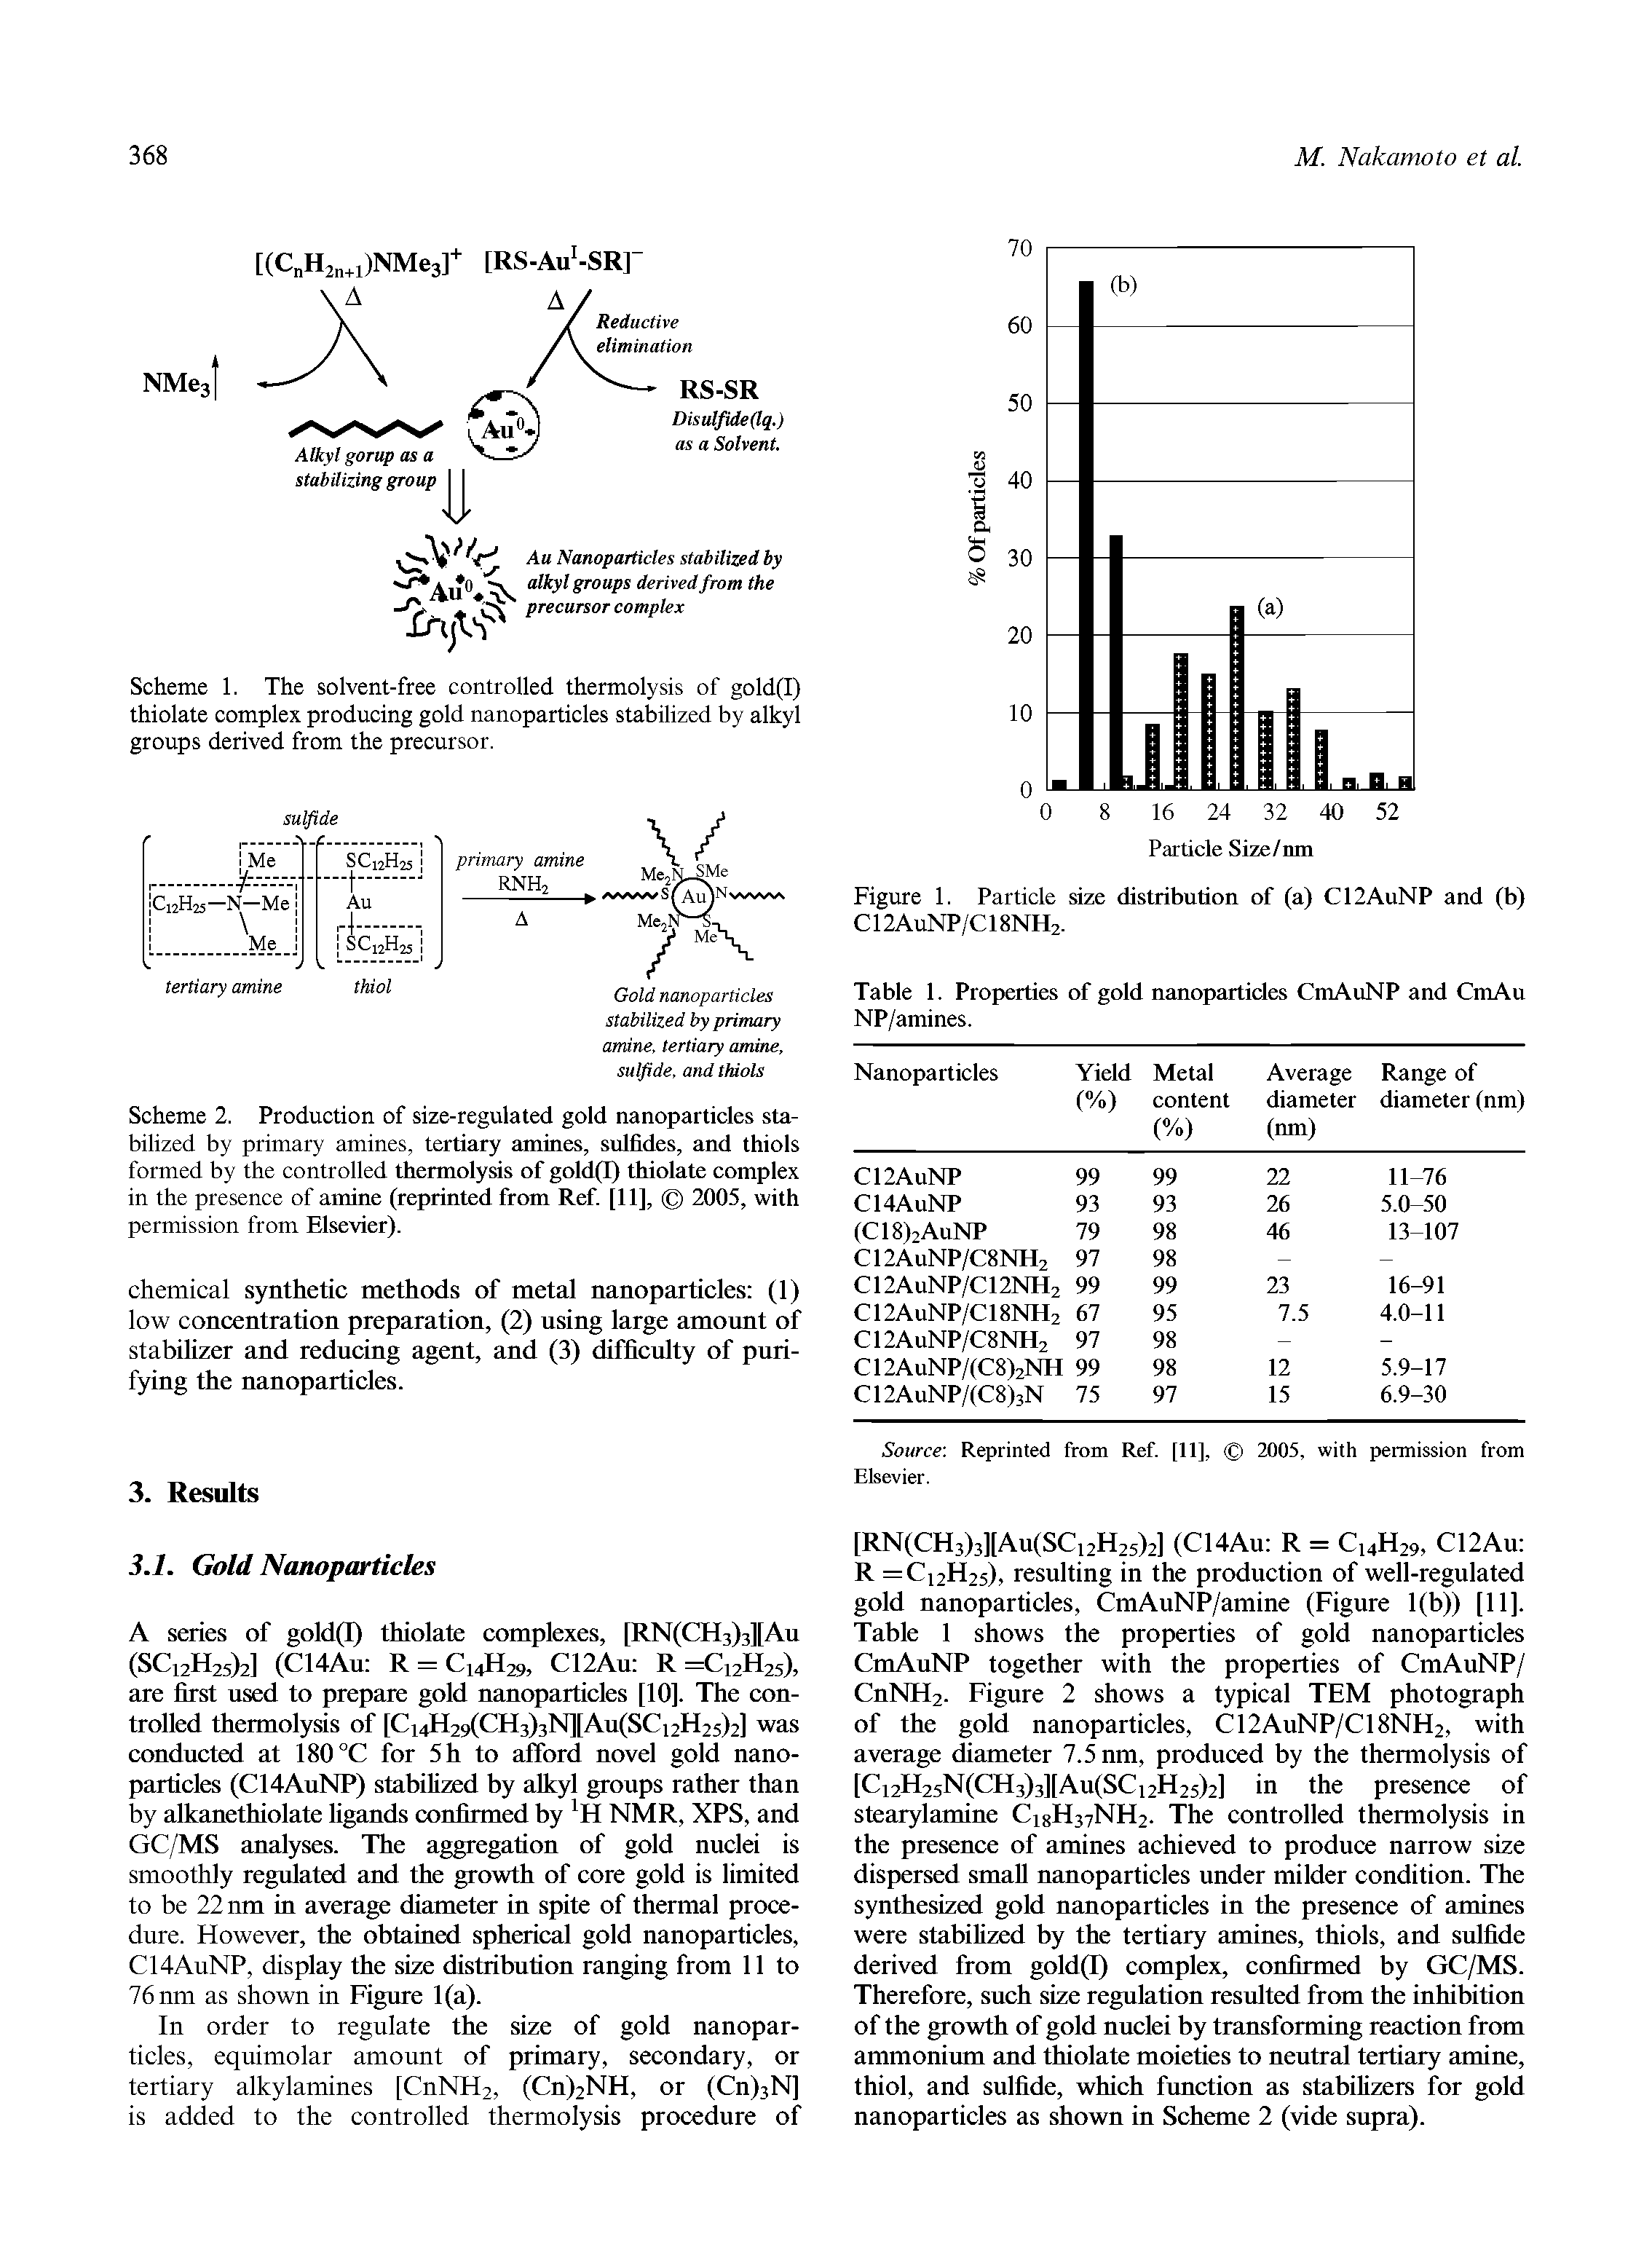 Scheme 2. Production of size-regulated gold nanoparticles stabilized by primary amines, tertiary amines, sulfides, and thiols formed by the controlled thermolysis of gold(I) thiolate complex in the presence of amine (reprinted from Ref. [11], 2005, with permission from Elsevier).